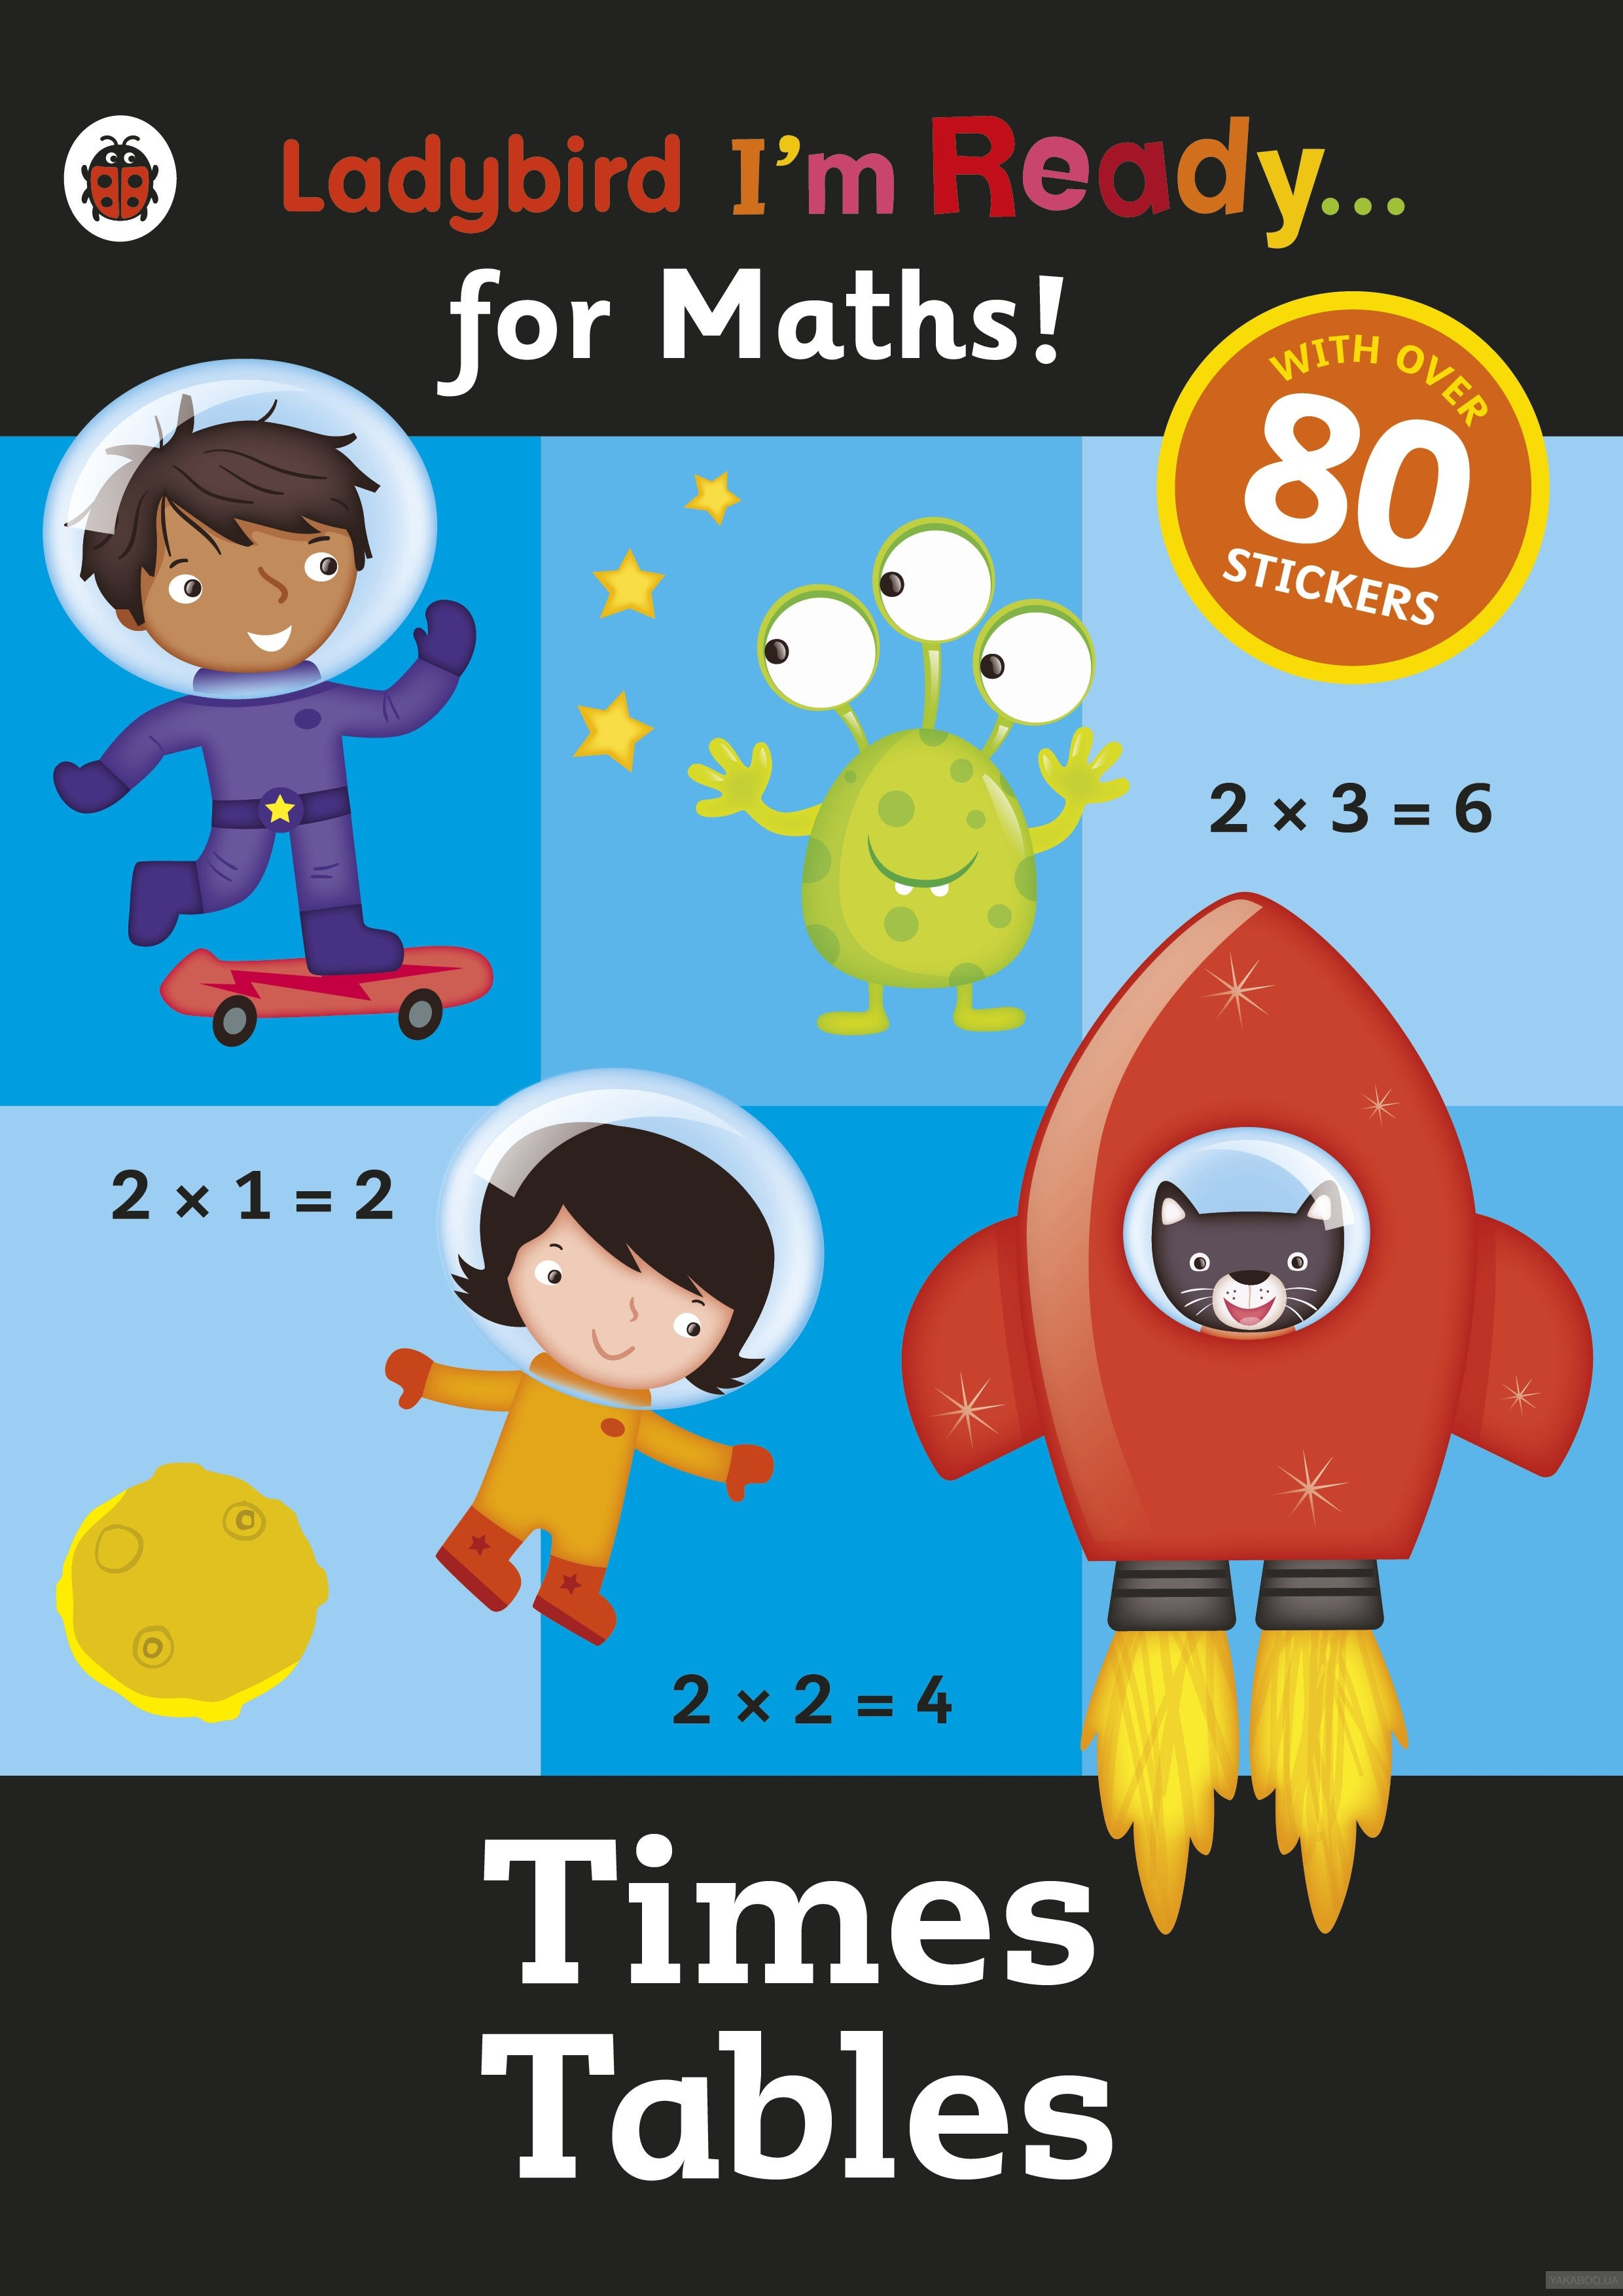 I&# 039;m Ready for Maths. Times Tables